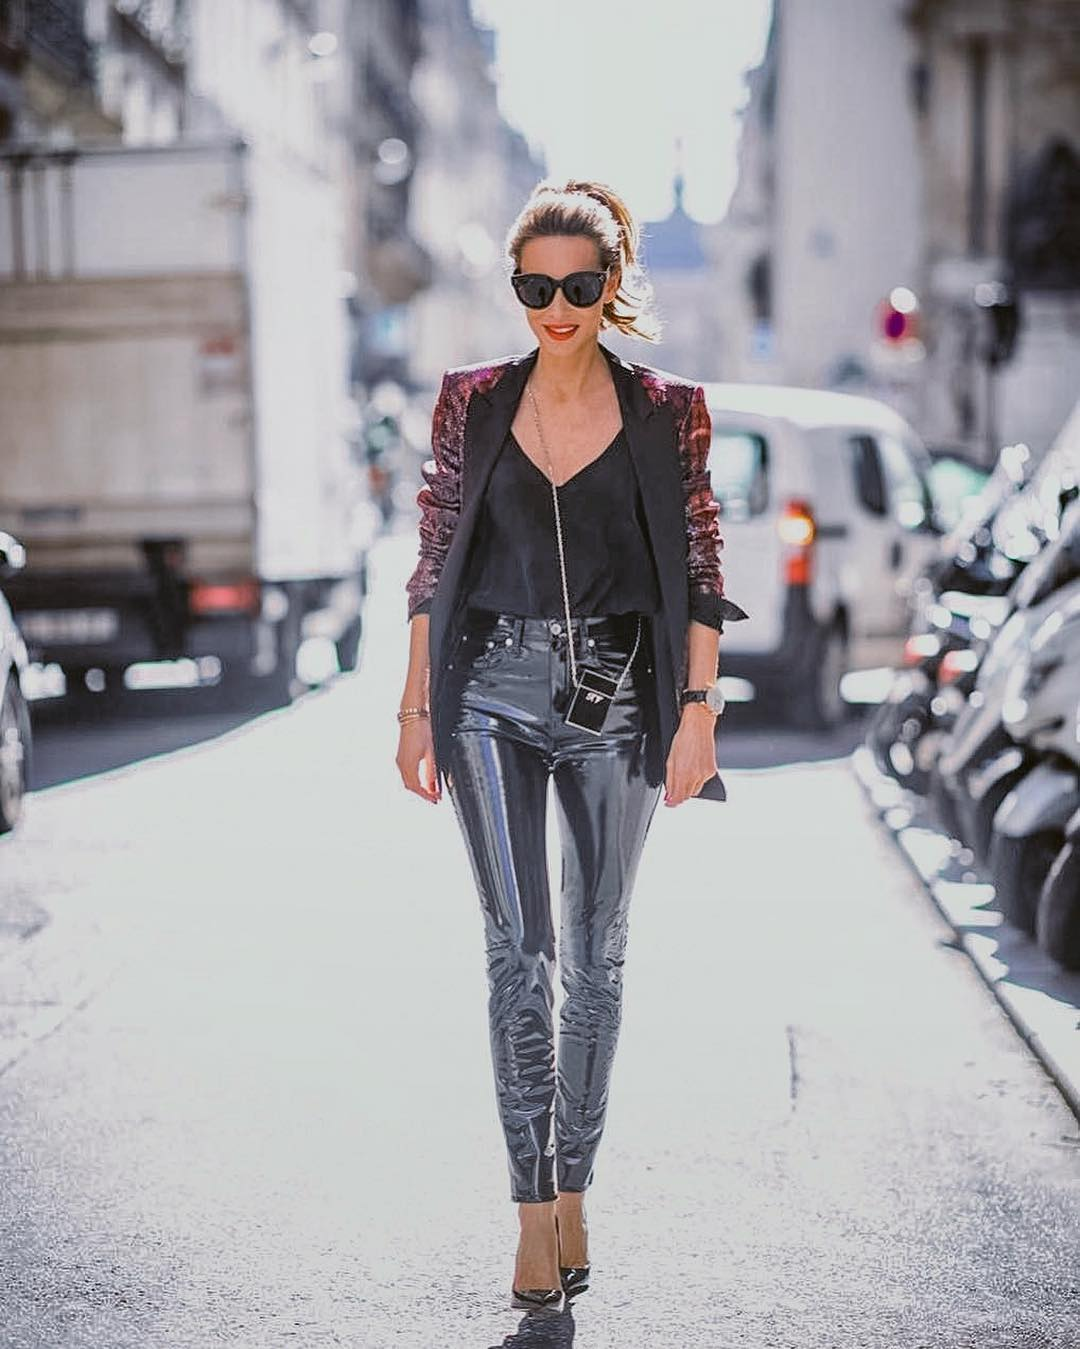 Combination of suede blazer and patent leather pants for autumn 2021